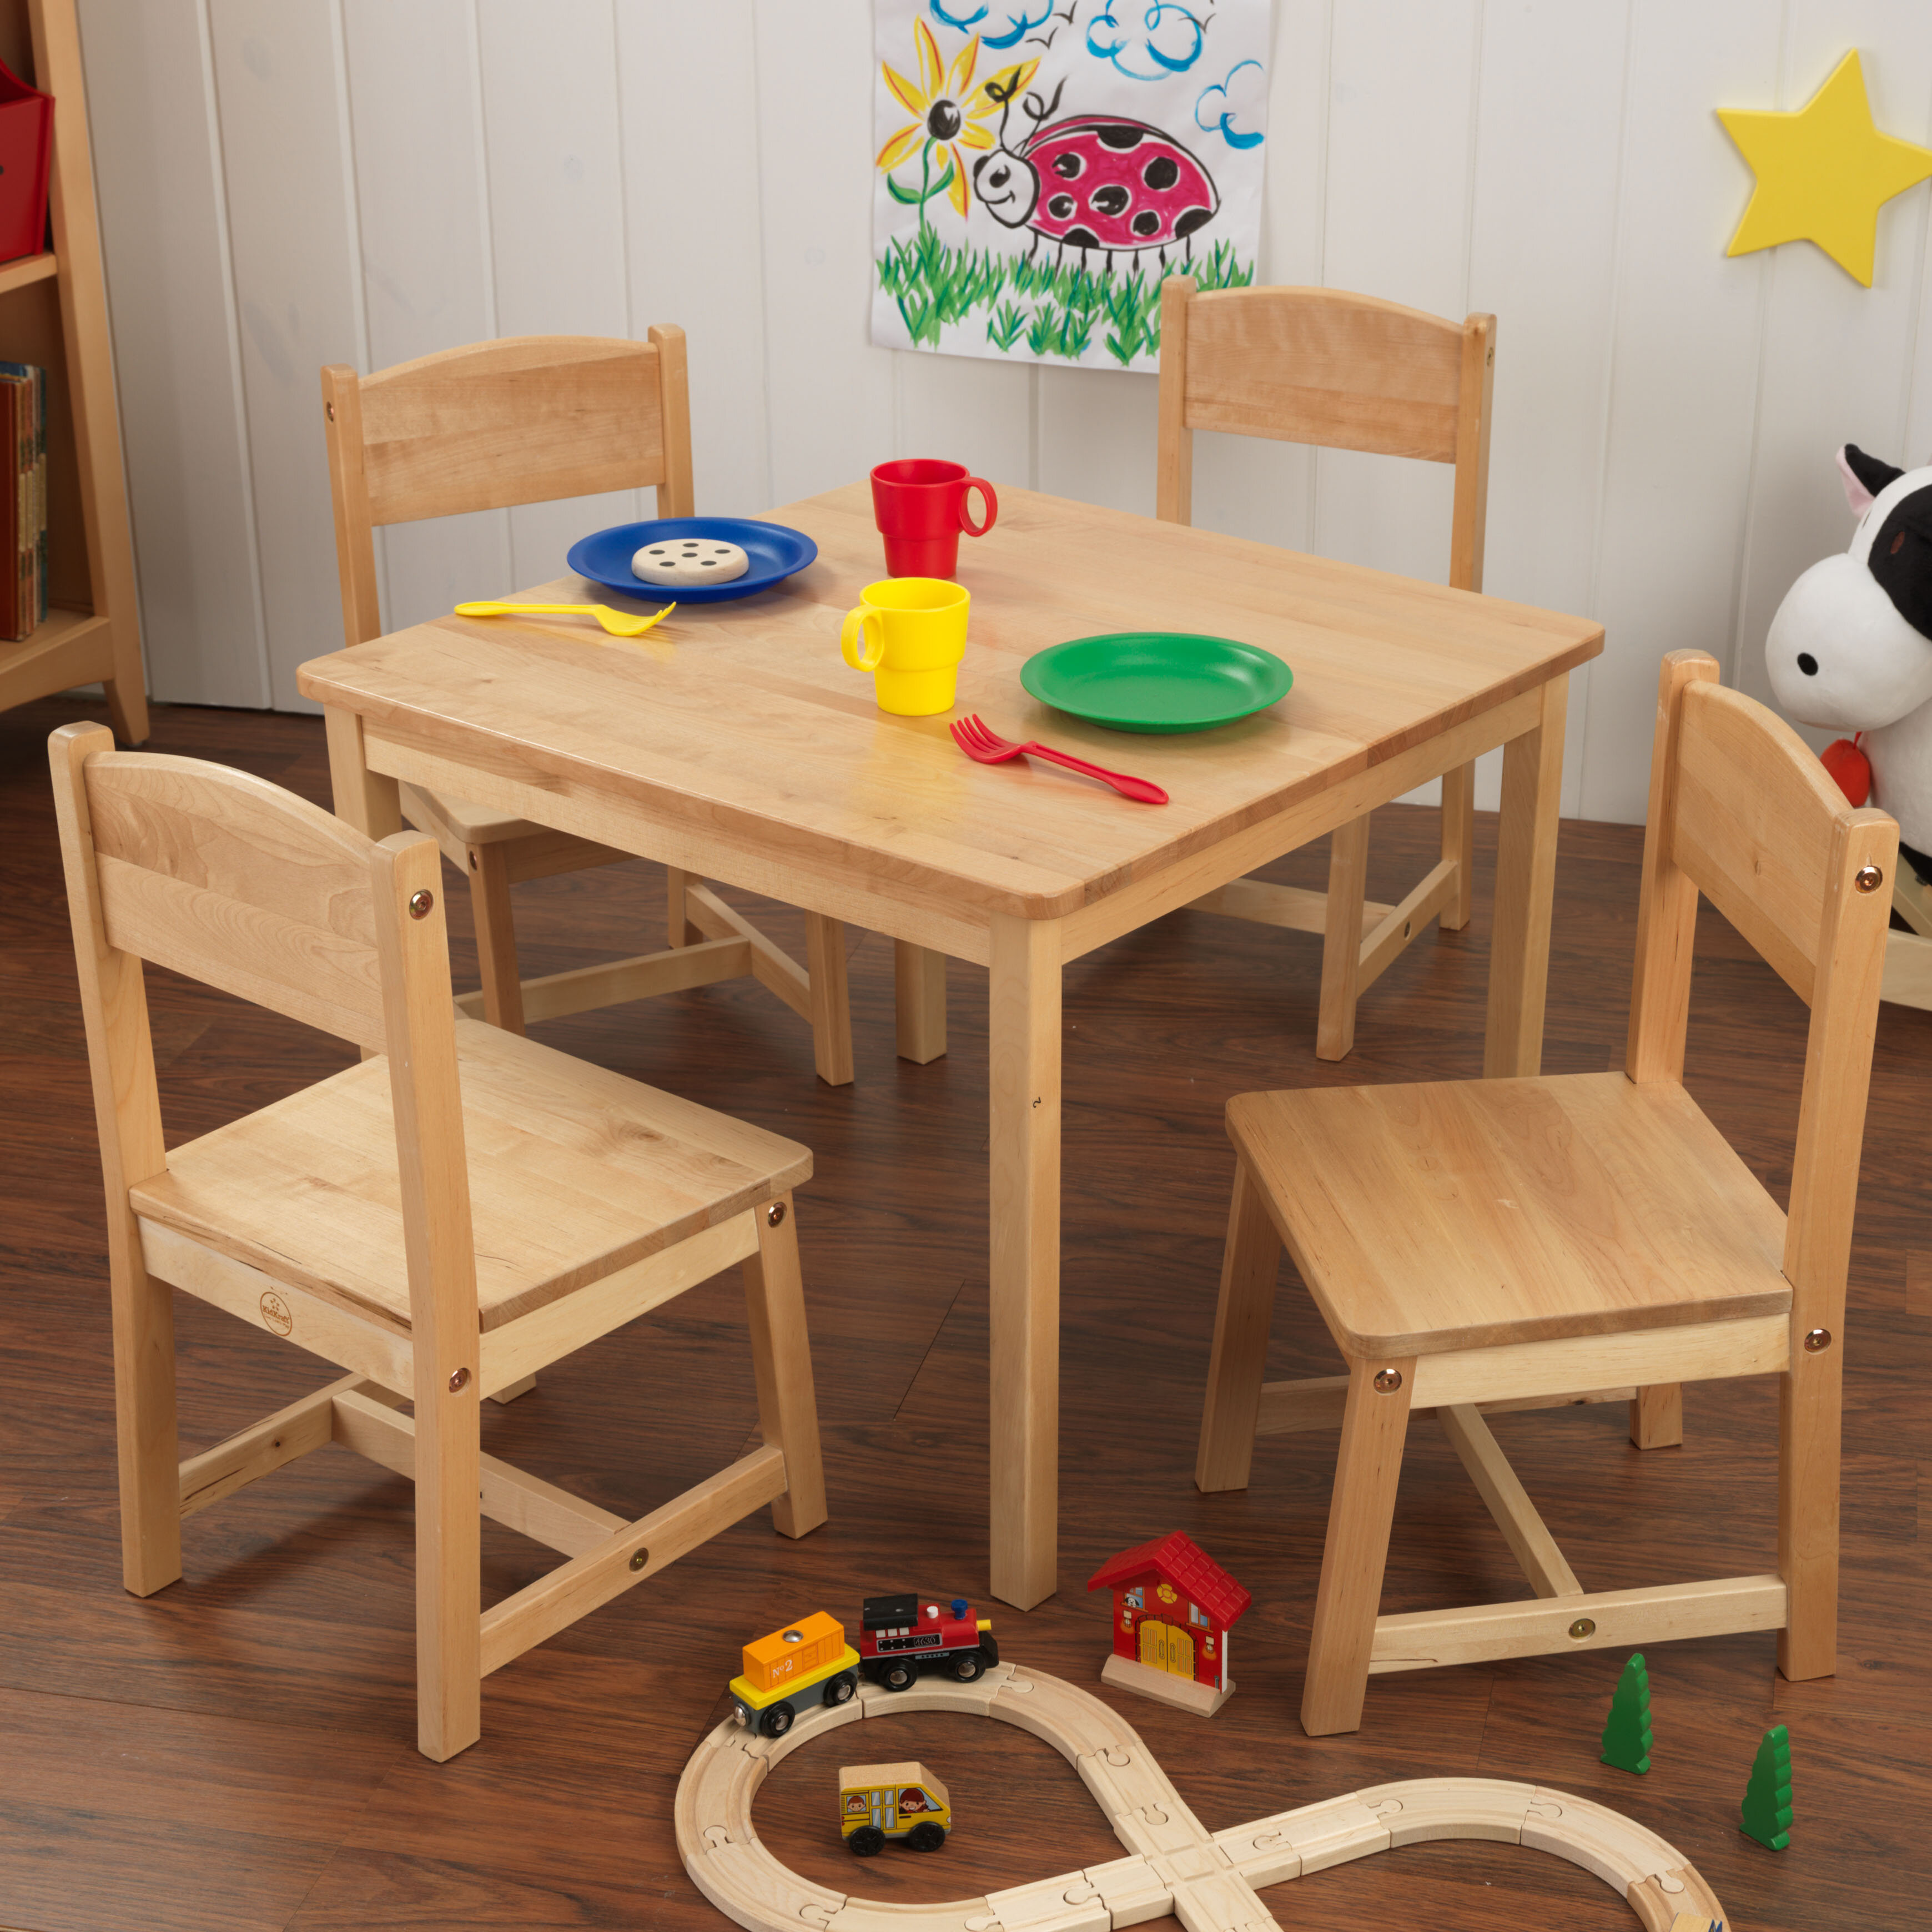 Astounding Kidkraft Farmhouse Kids 5 Piece Writing Table And Chair Set Andrewgaddart Wooden Chair Designs For Living Room Andrewgaddartcom